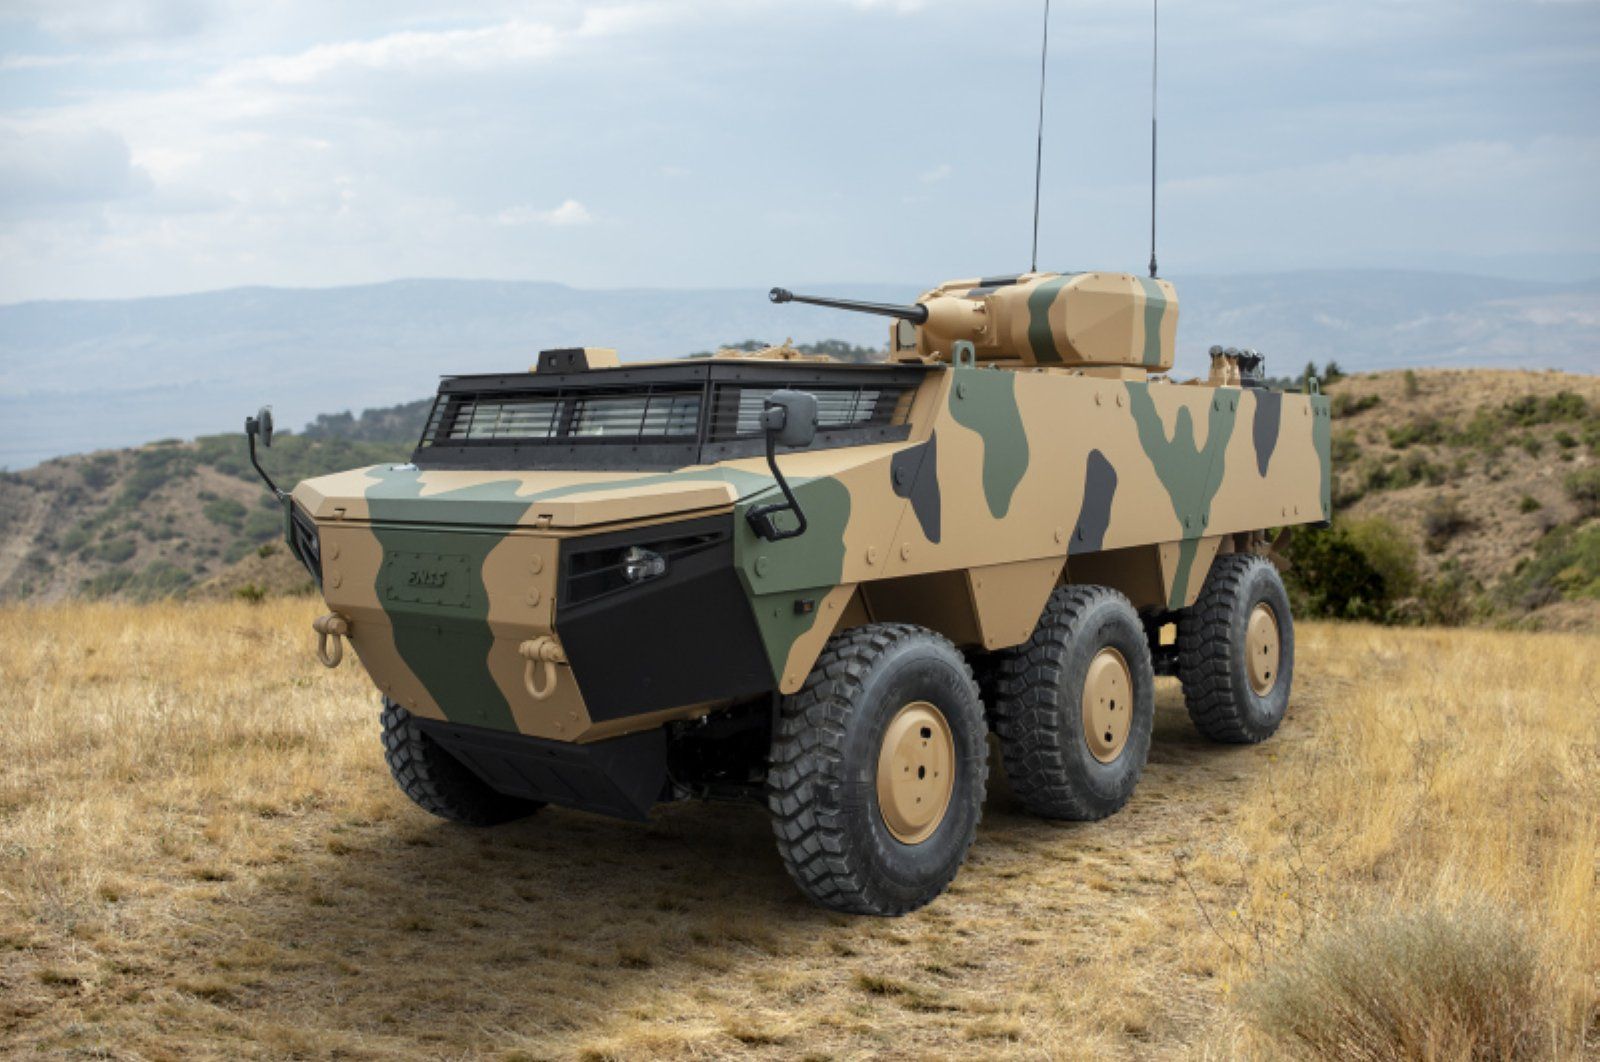 The new generation tank destroyer vehicle, Kaplan of the Turkish defense firm FNSS. (Photo by the FNSS via AA)